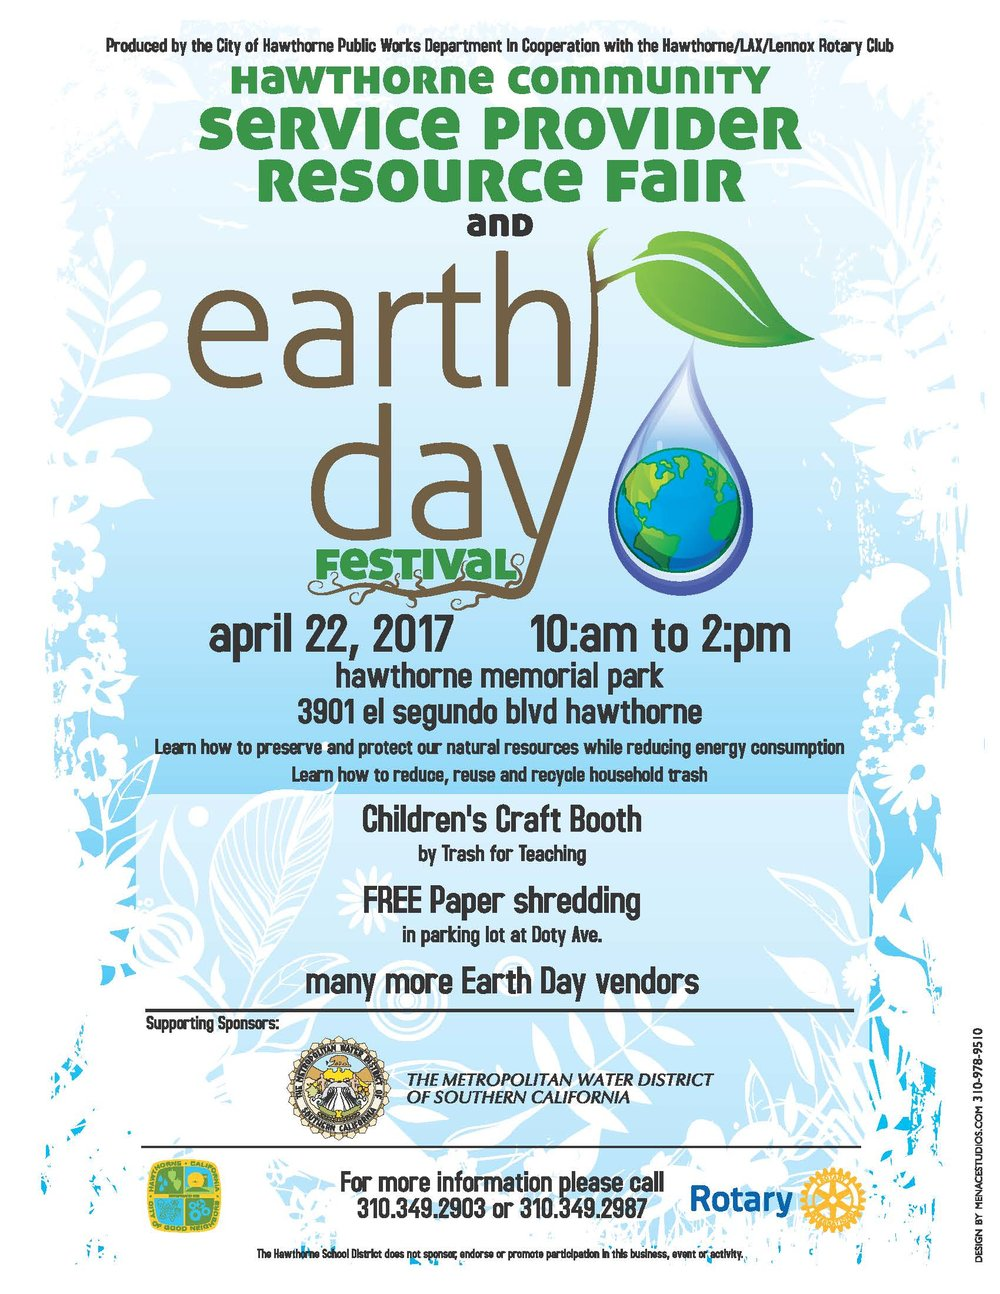 Service Provider Resource Fair and Earth Day